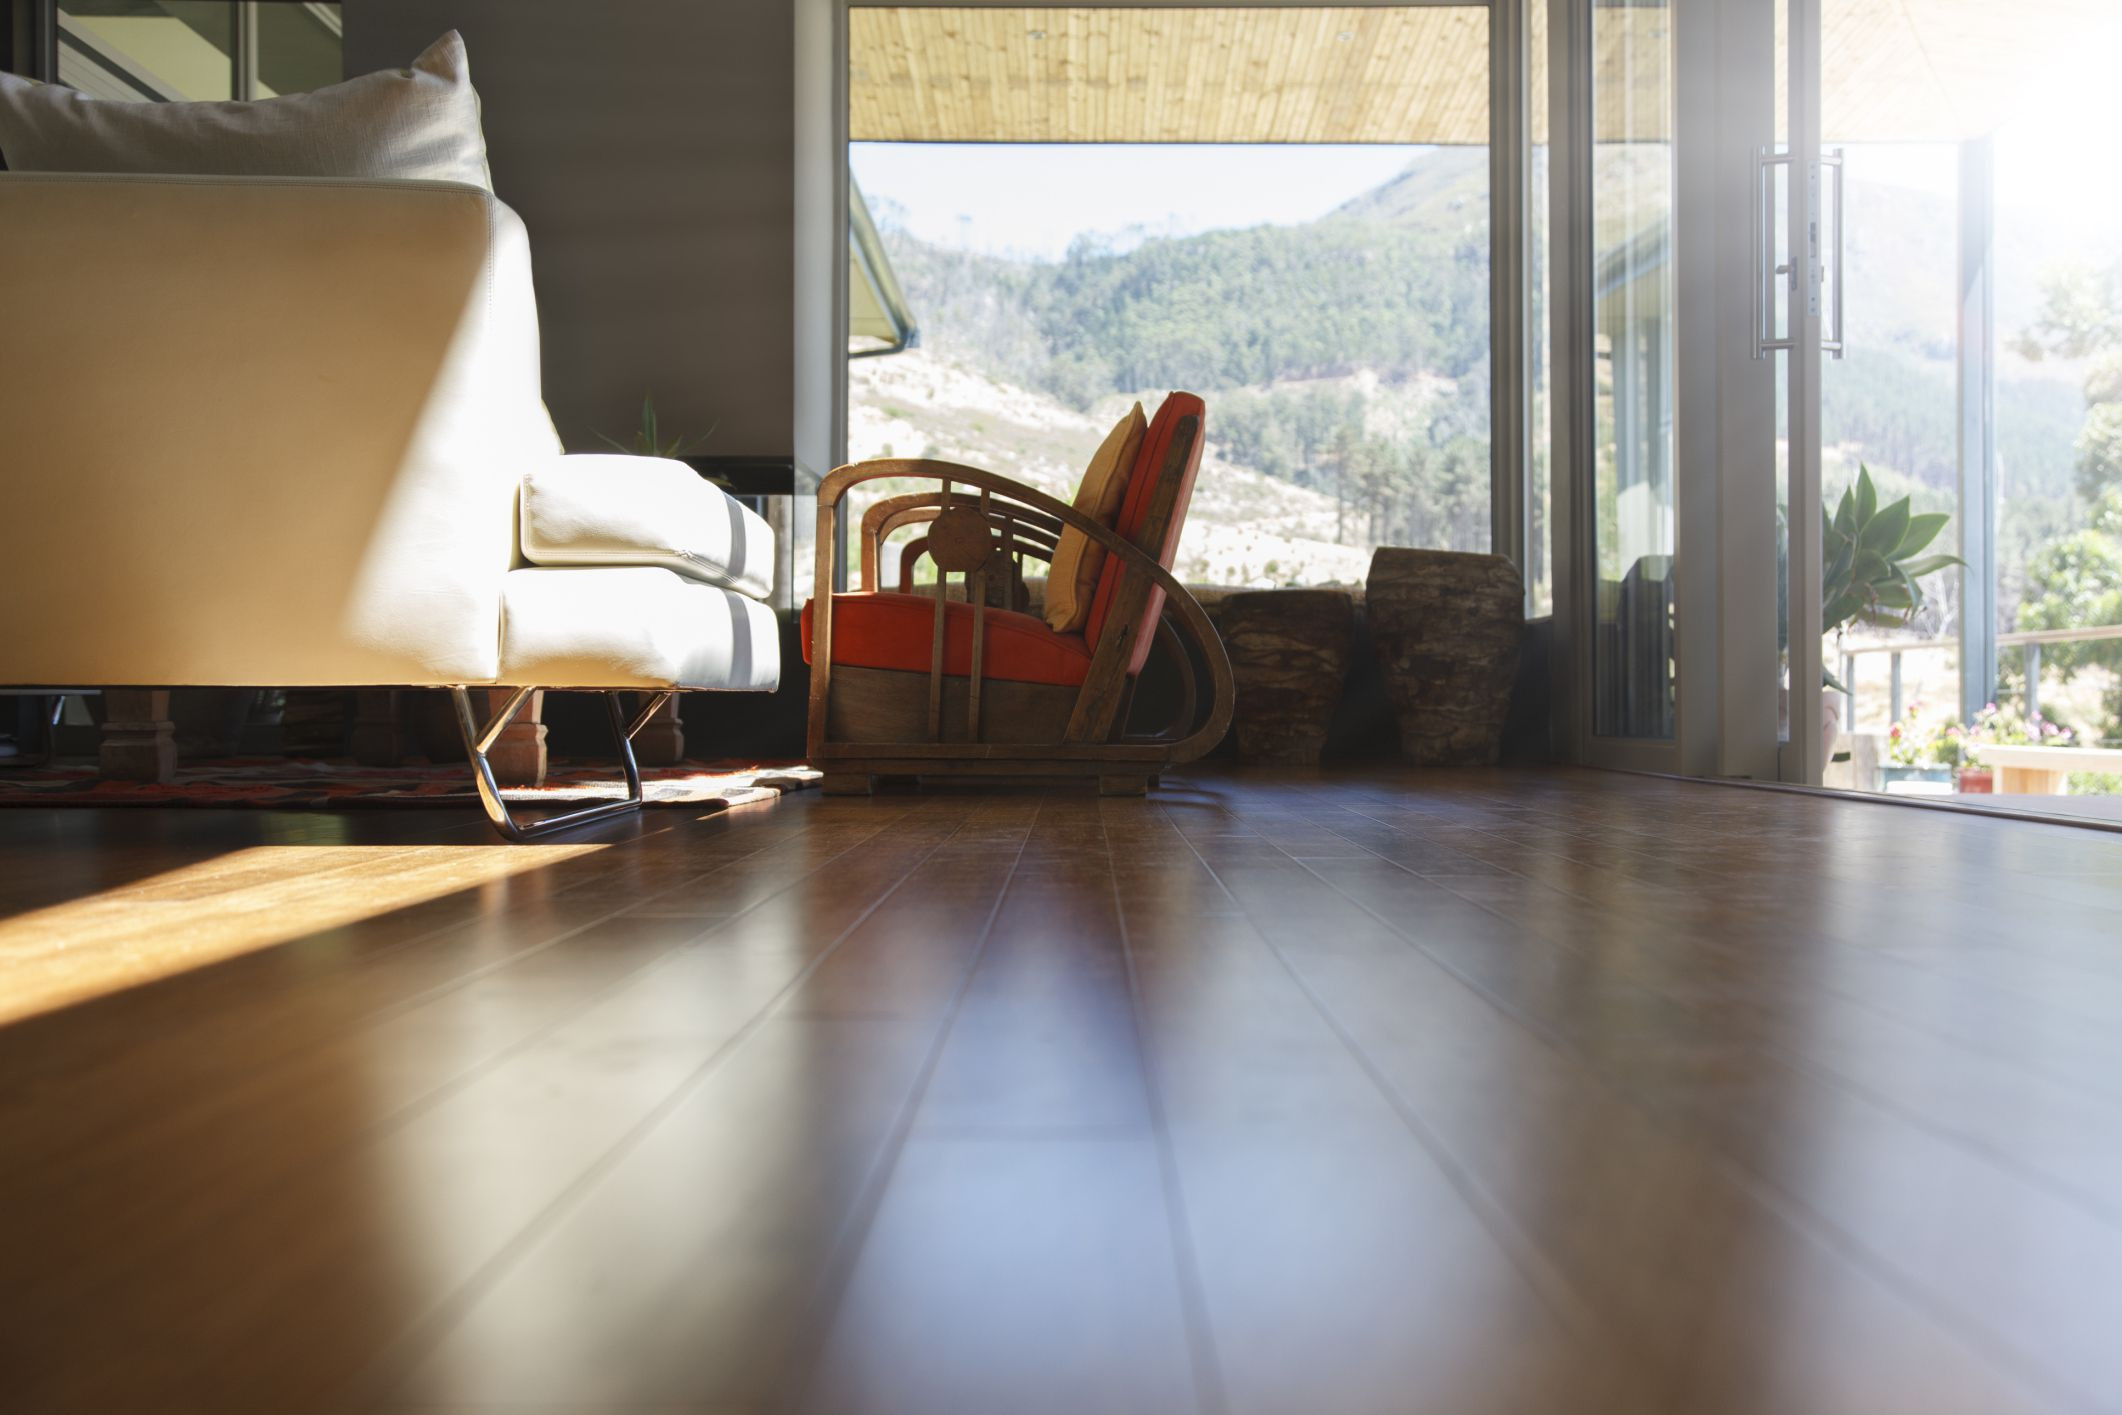 vintage hardwood floor company of pros and cons of bellawood flooring from lumber liquidators throughout exotic hardwood flooring 525439899 56a49d3a3df78cf77283453d